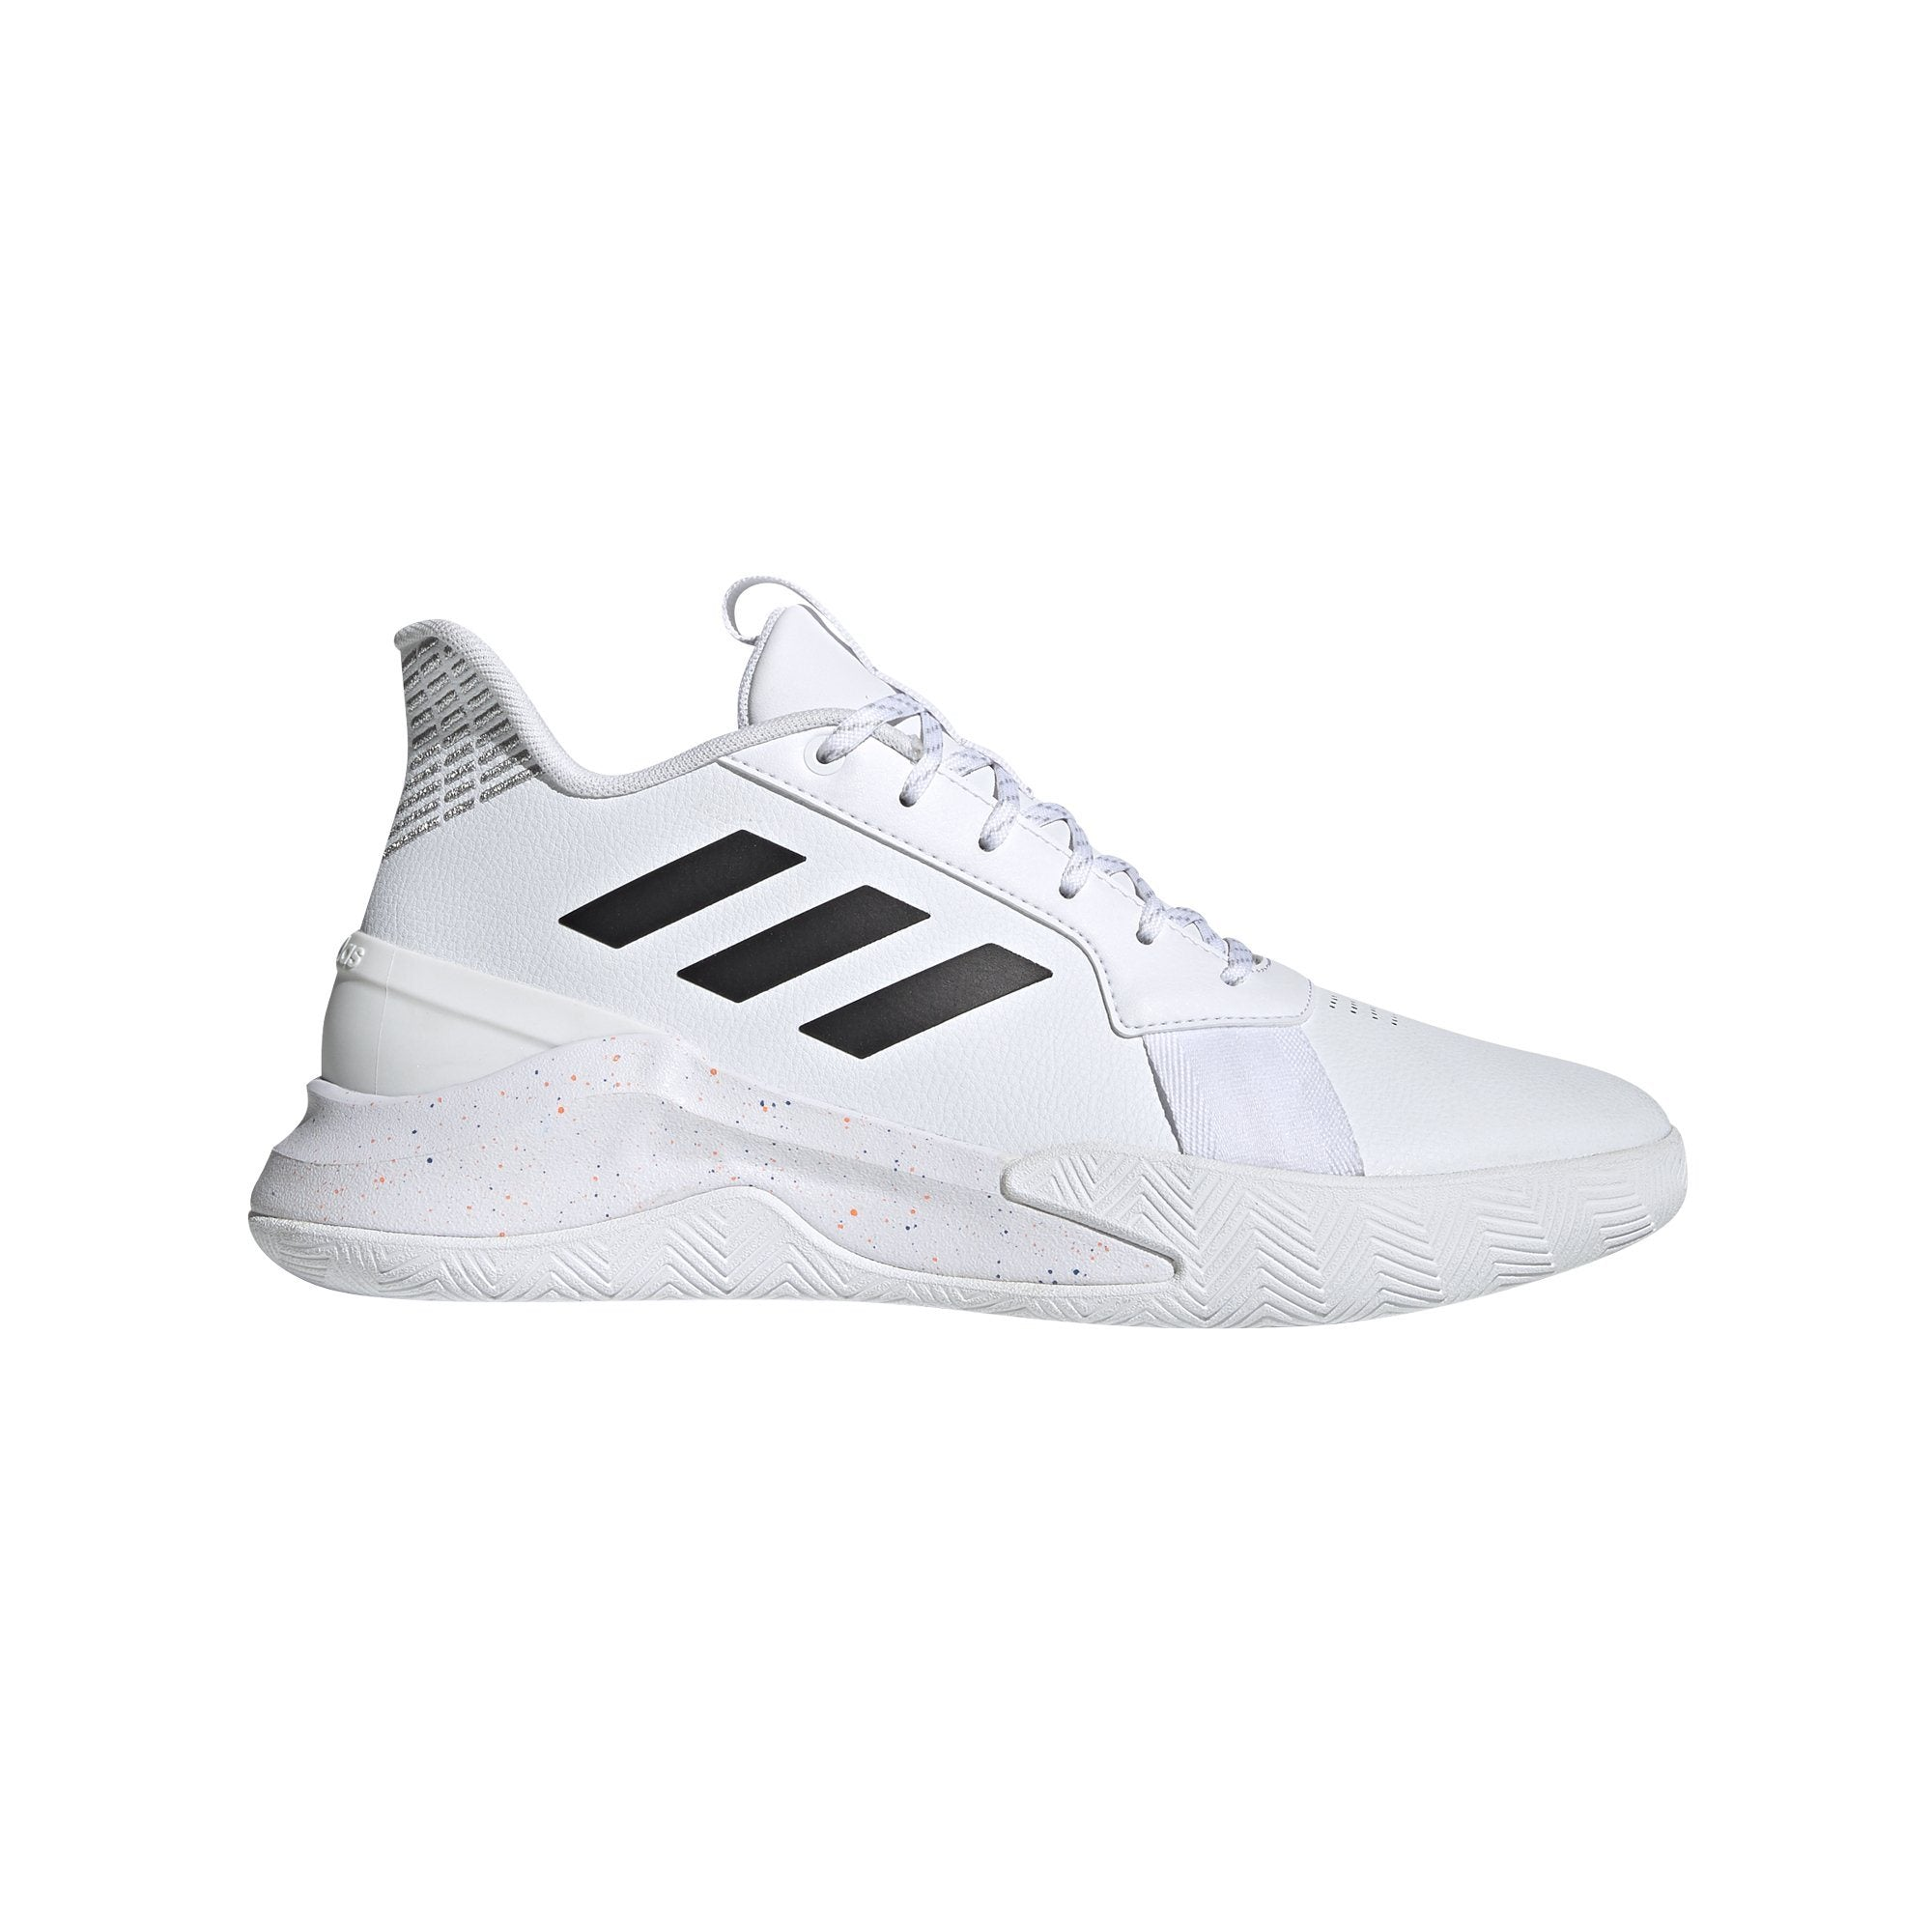 adidas core black cheap white and blue shoes